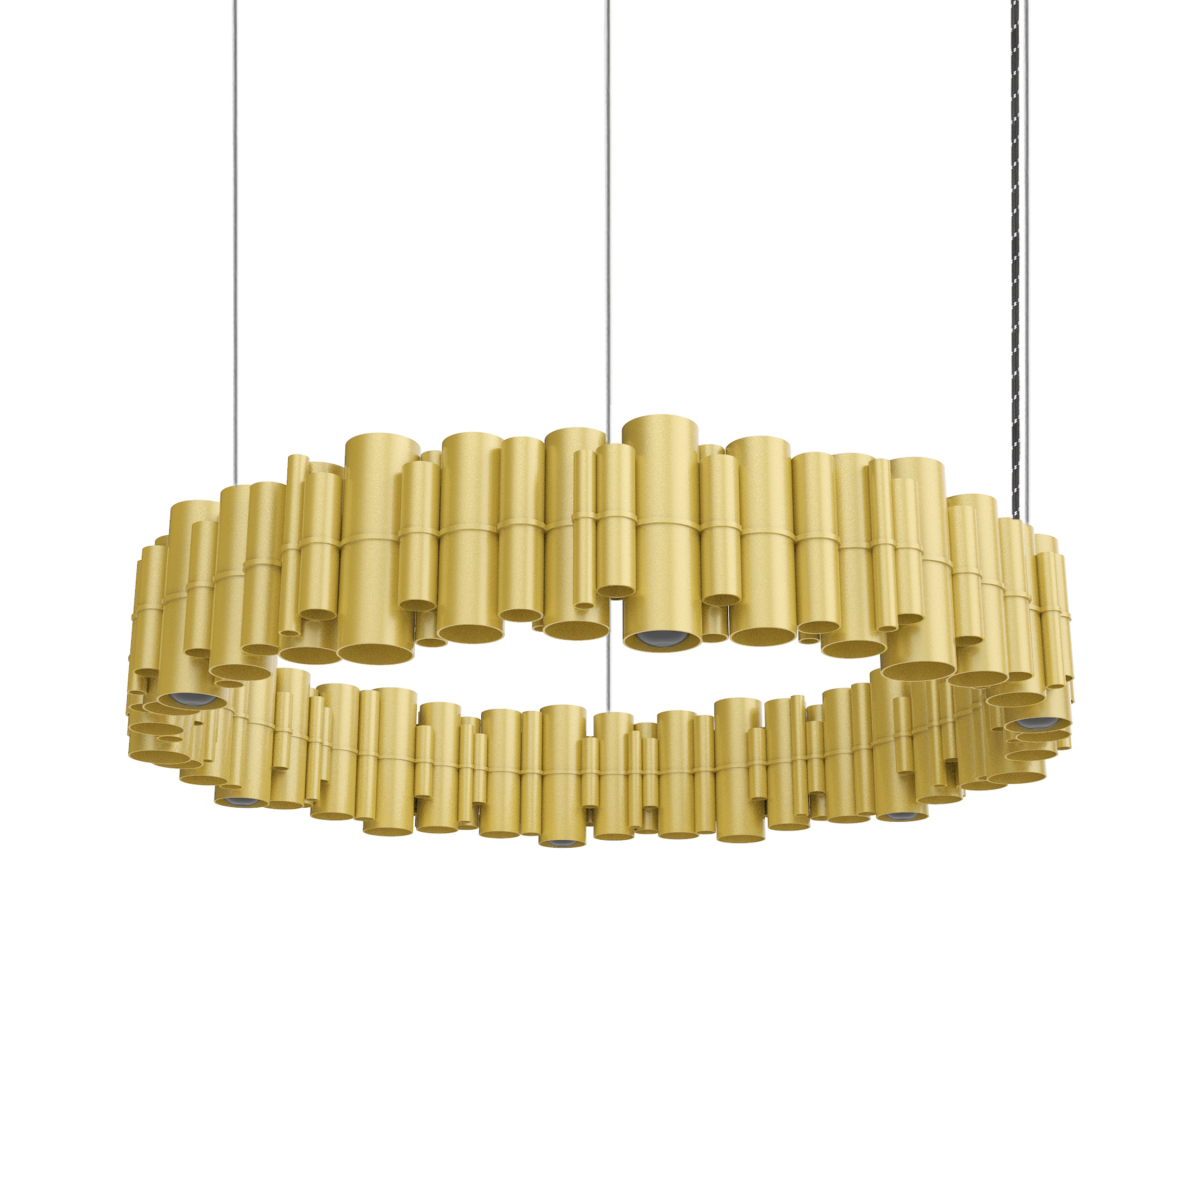 JSPR Cityscapes Suburban OFF Gold Goud Dutch Design Lamp